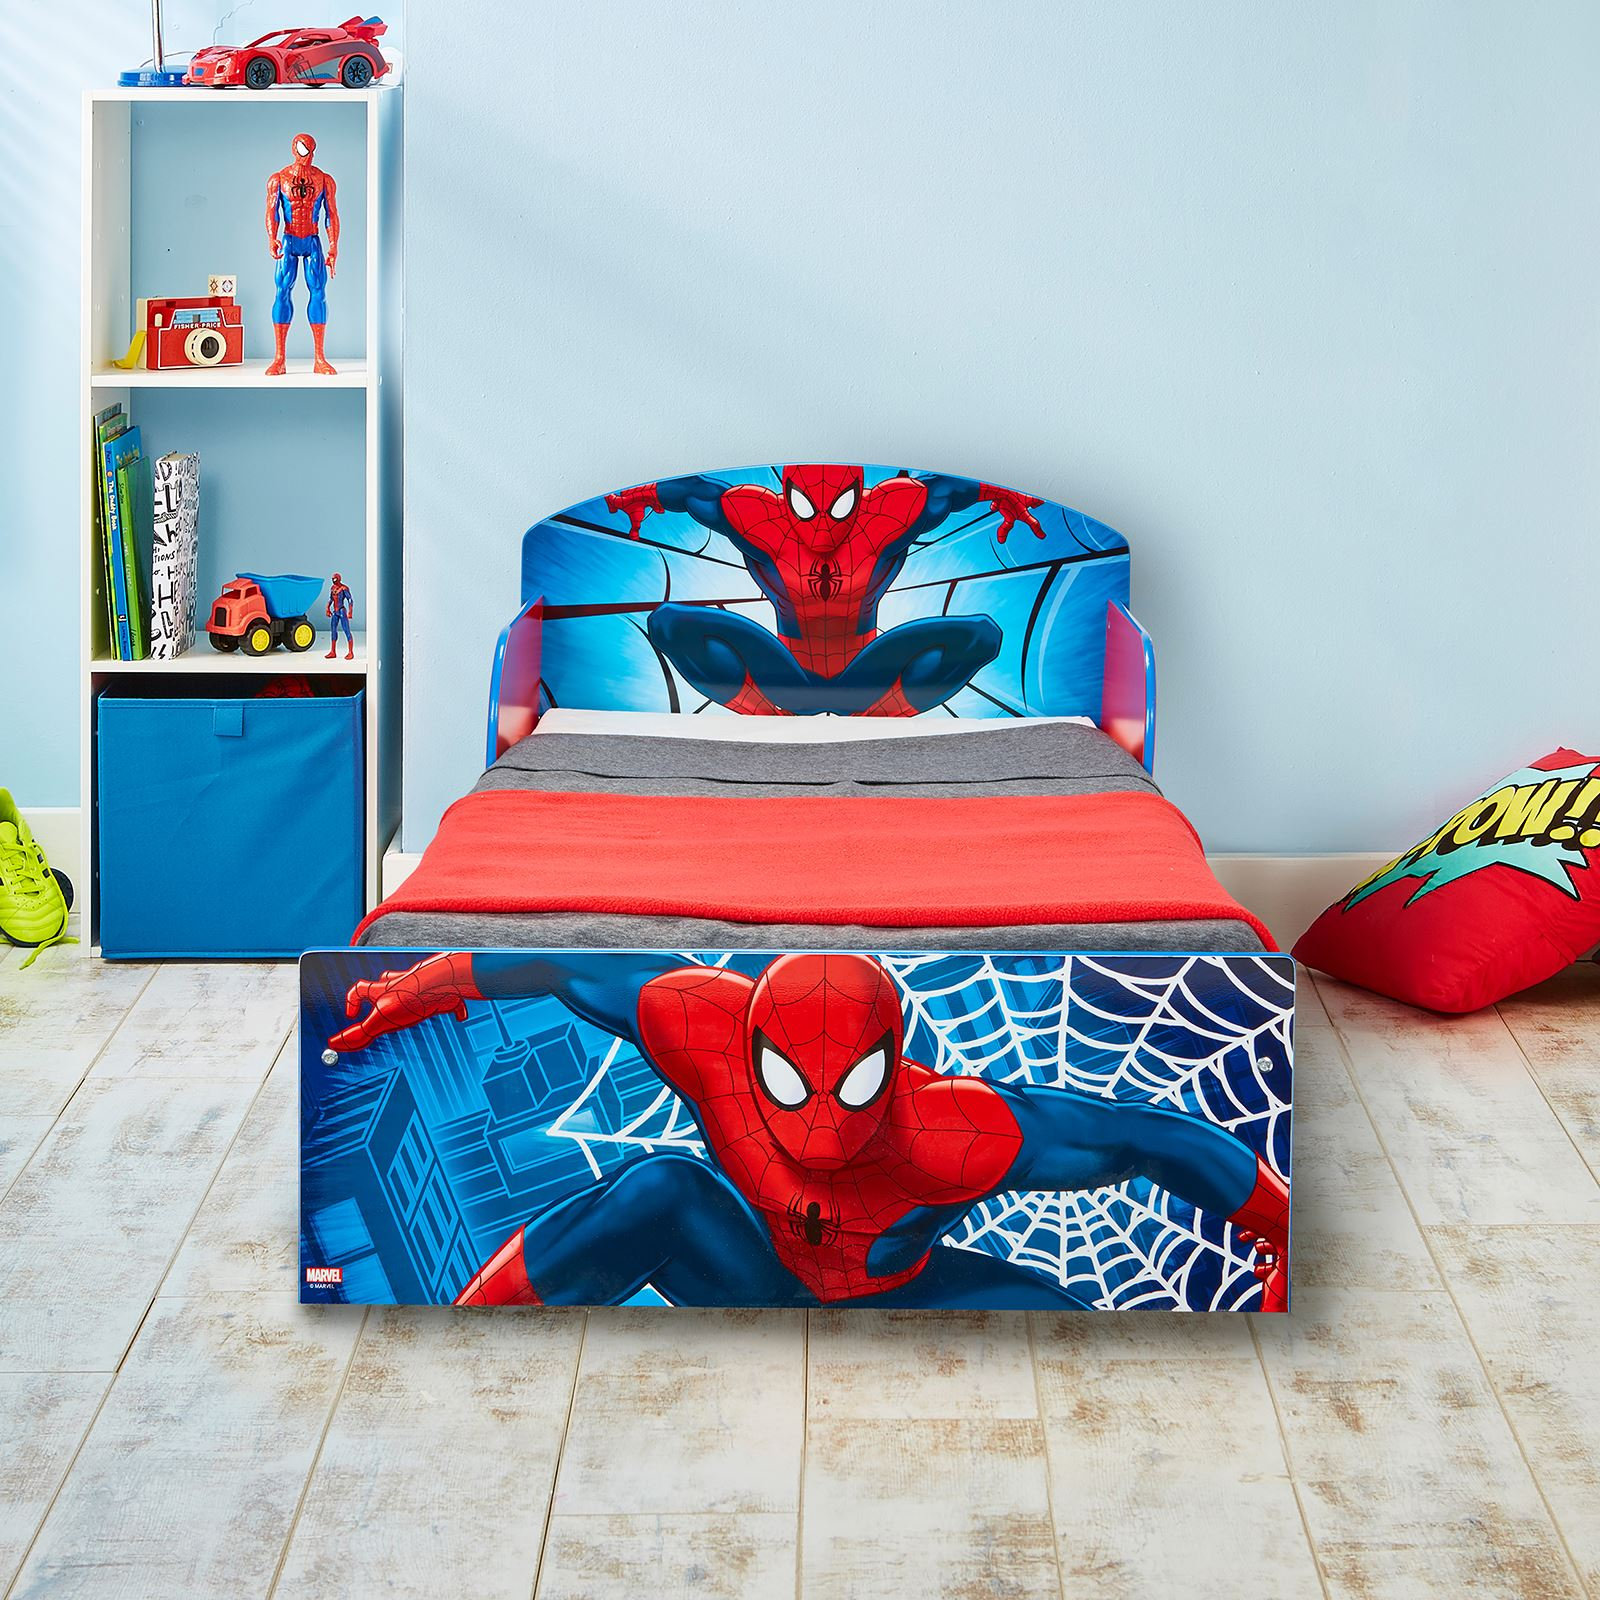 Spiderman Toddler Bed With Protective Side Guards Amp 3